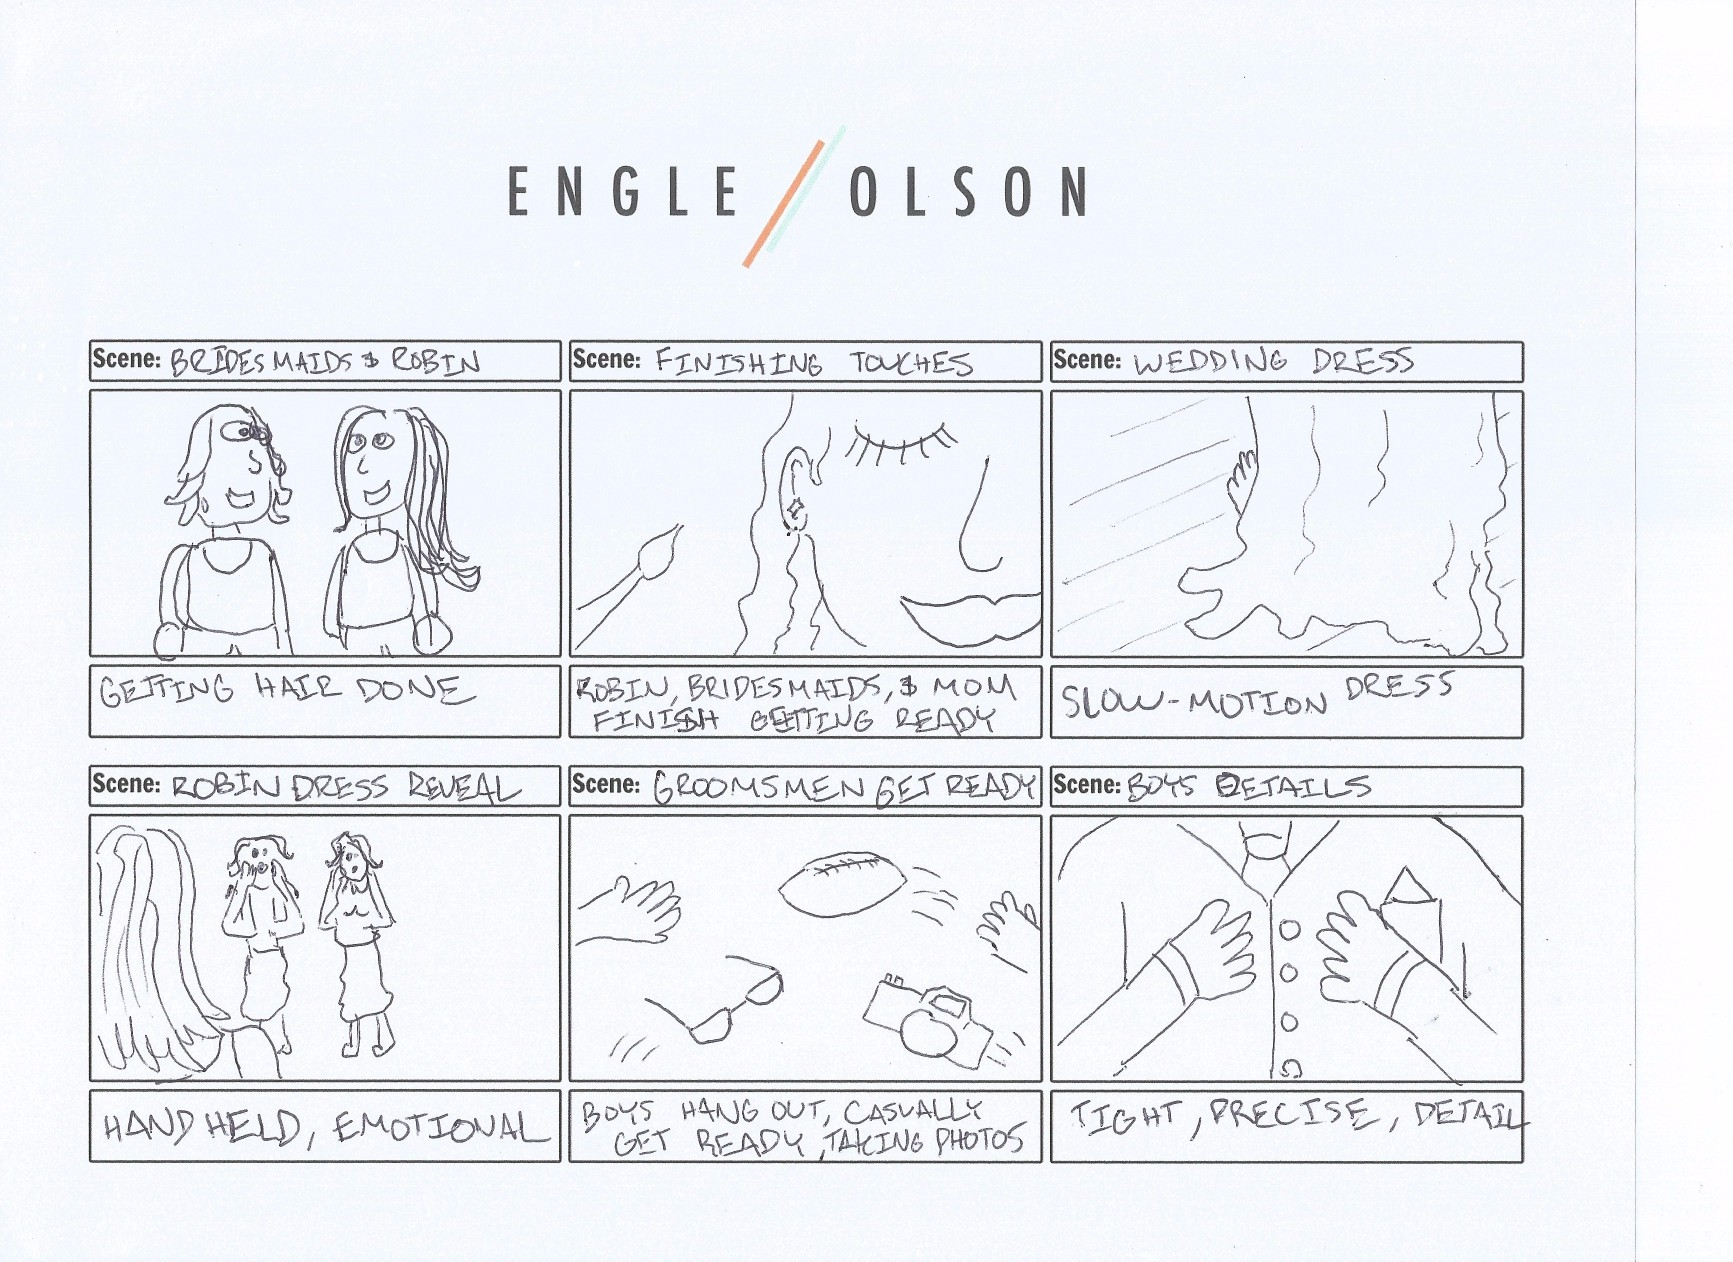 The Bride Experience: Storyboard 3